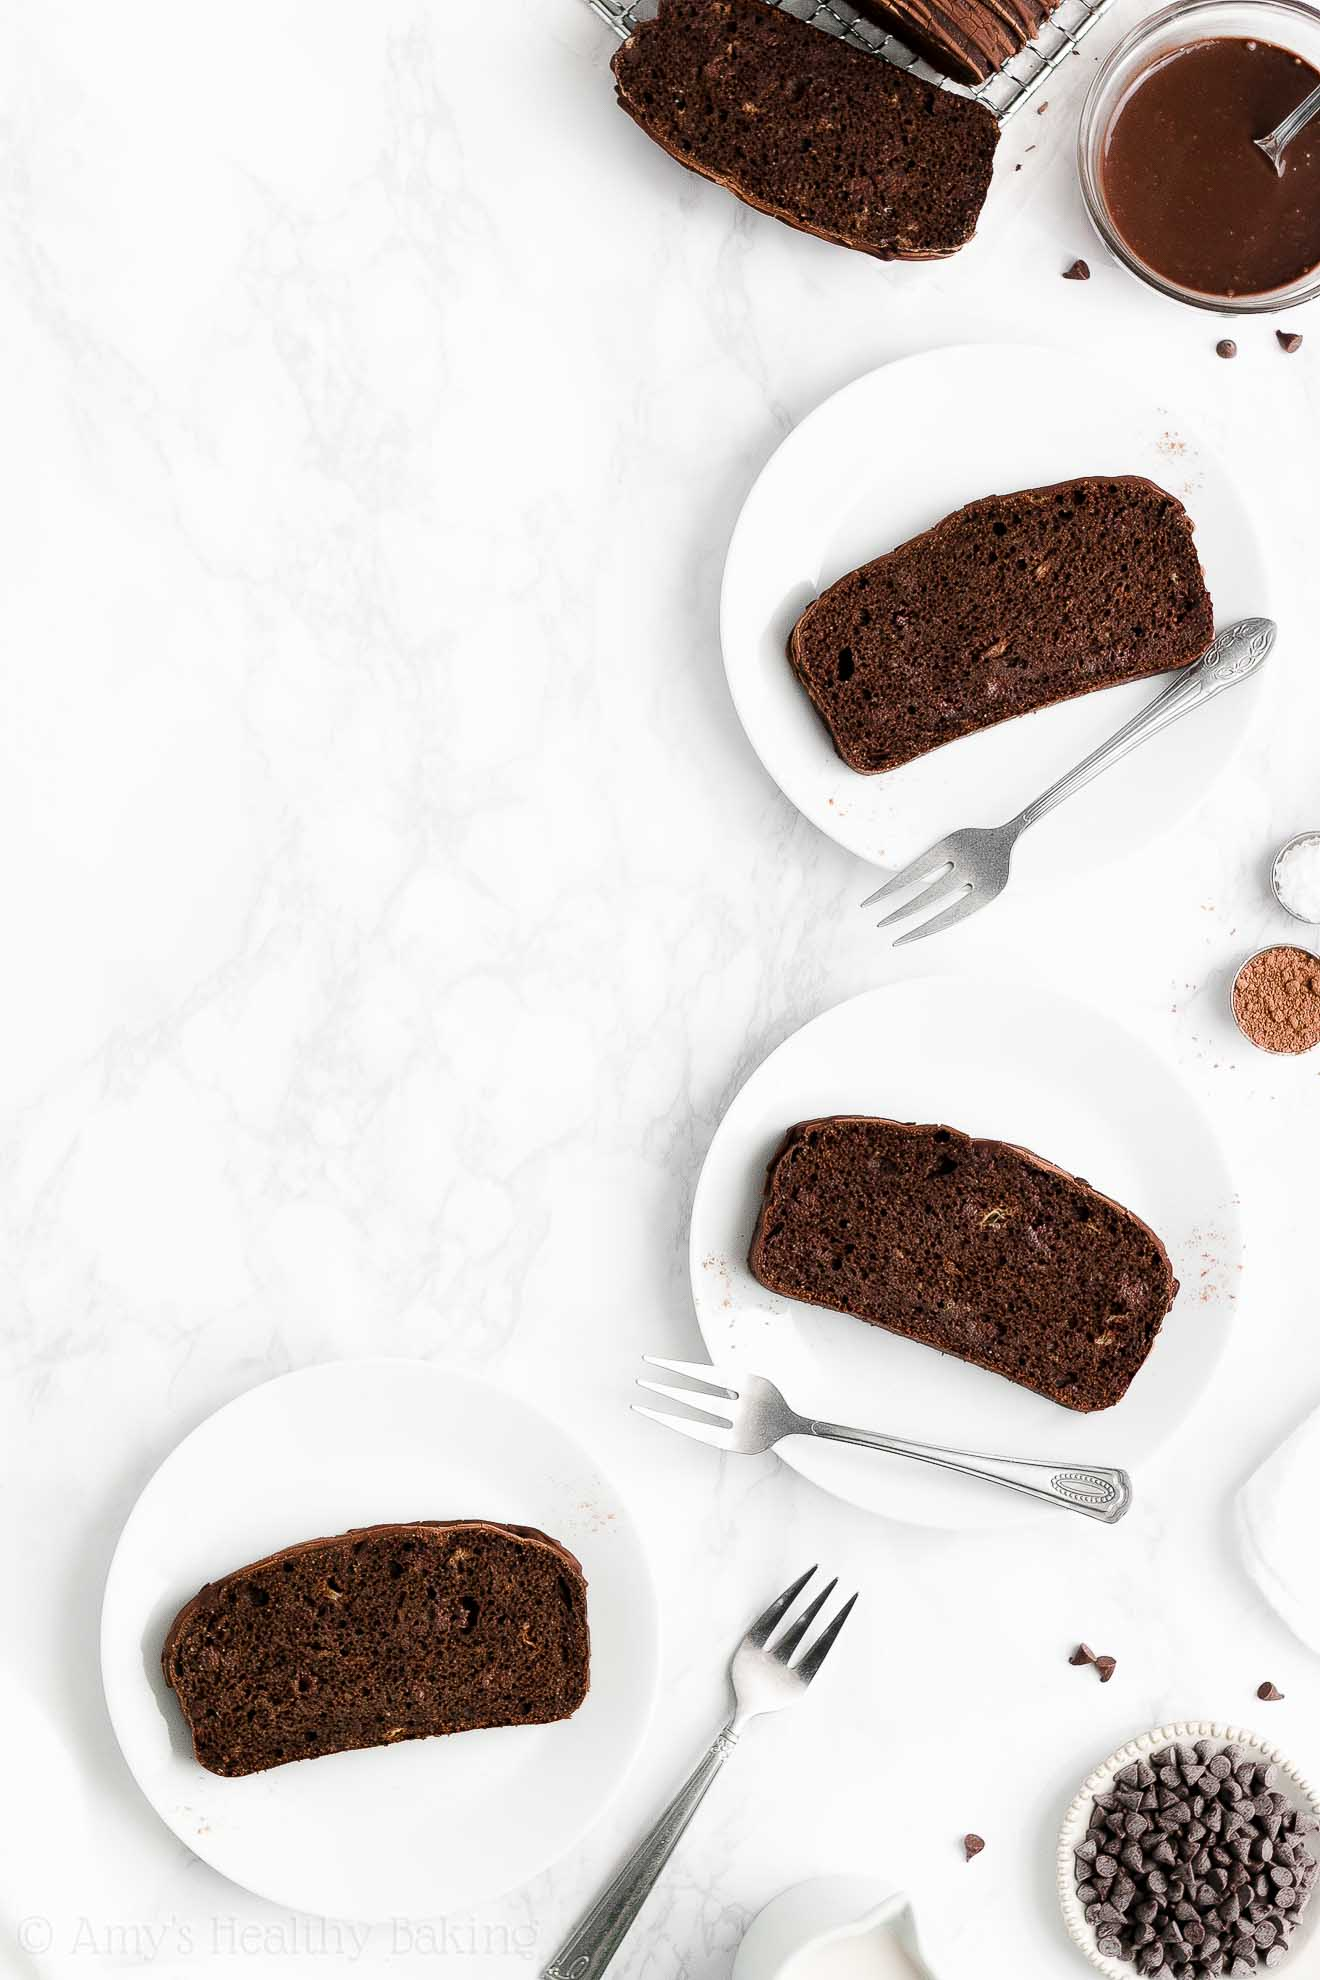 BEST EVER Easy Healthy Low Fat Low Calorie Homemade Chocolate Banana Bread